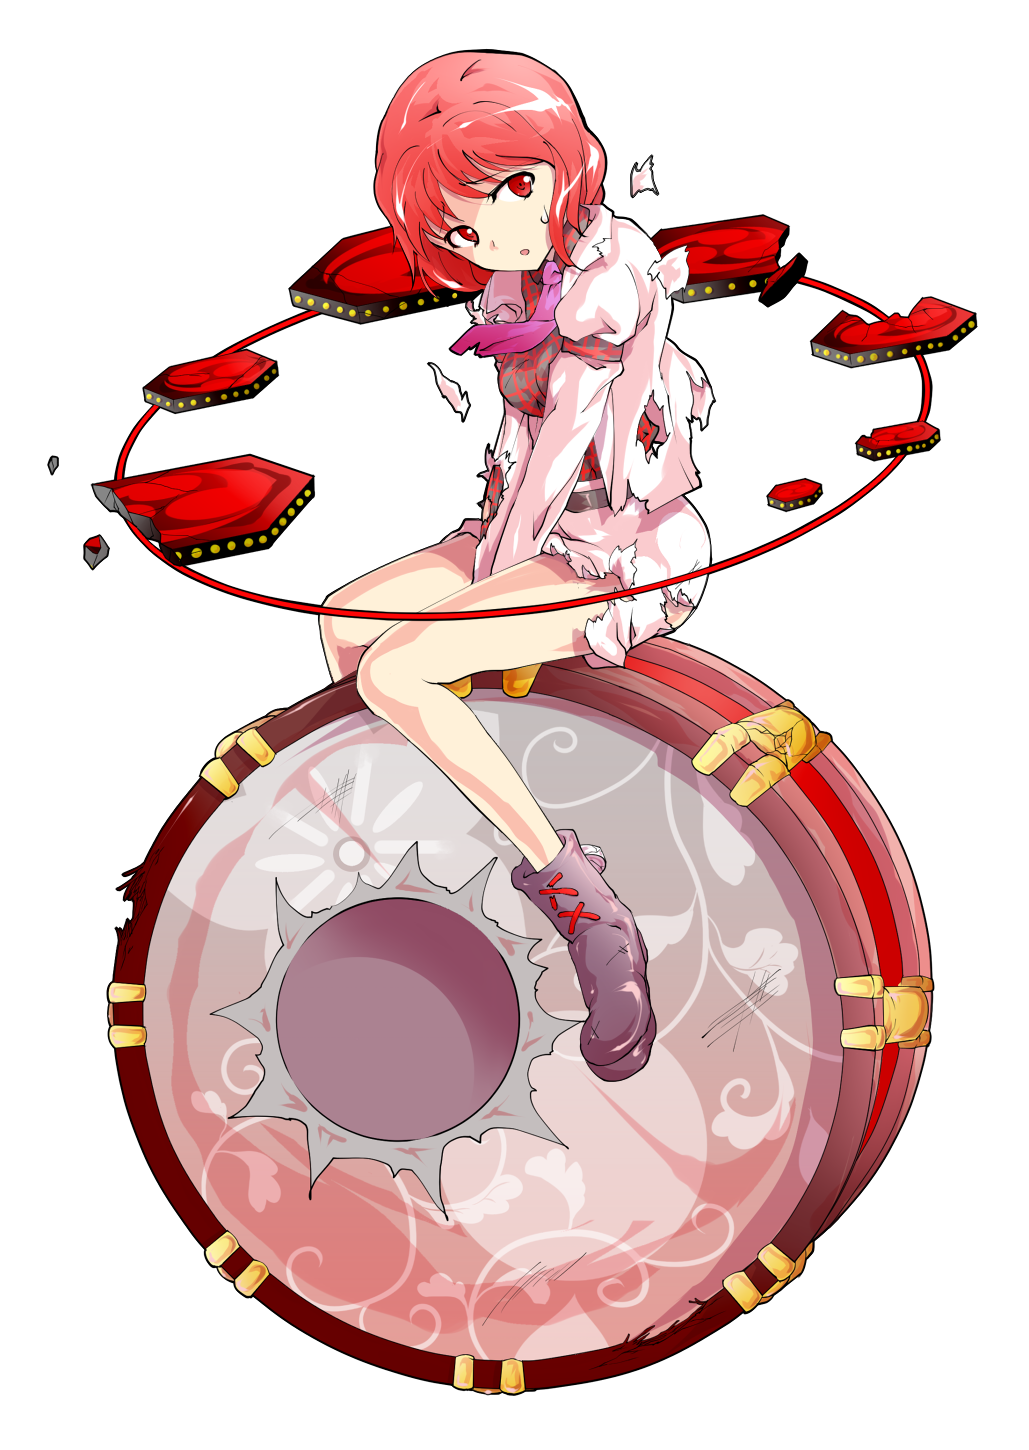 Hurt clipart sport injury. Safebooru anime picture search